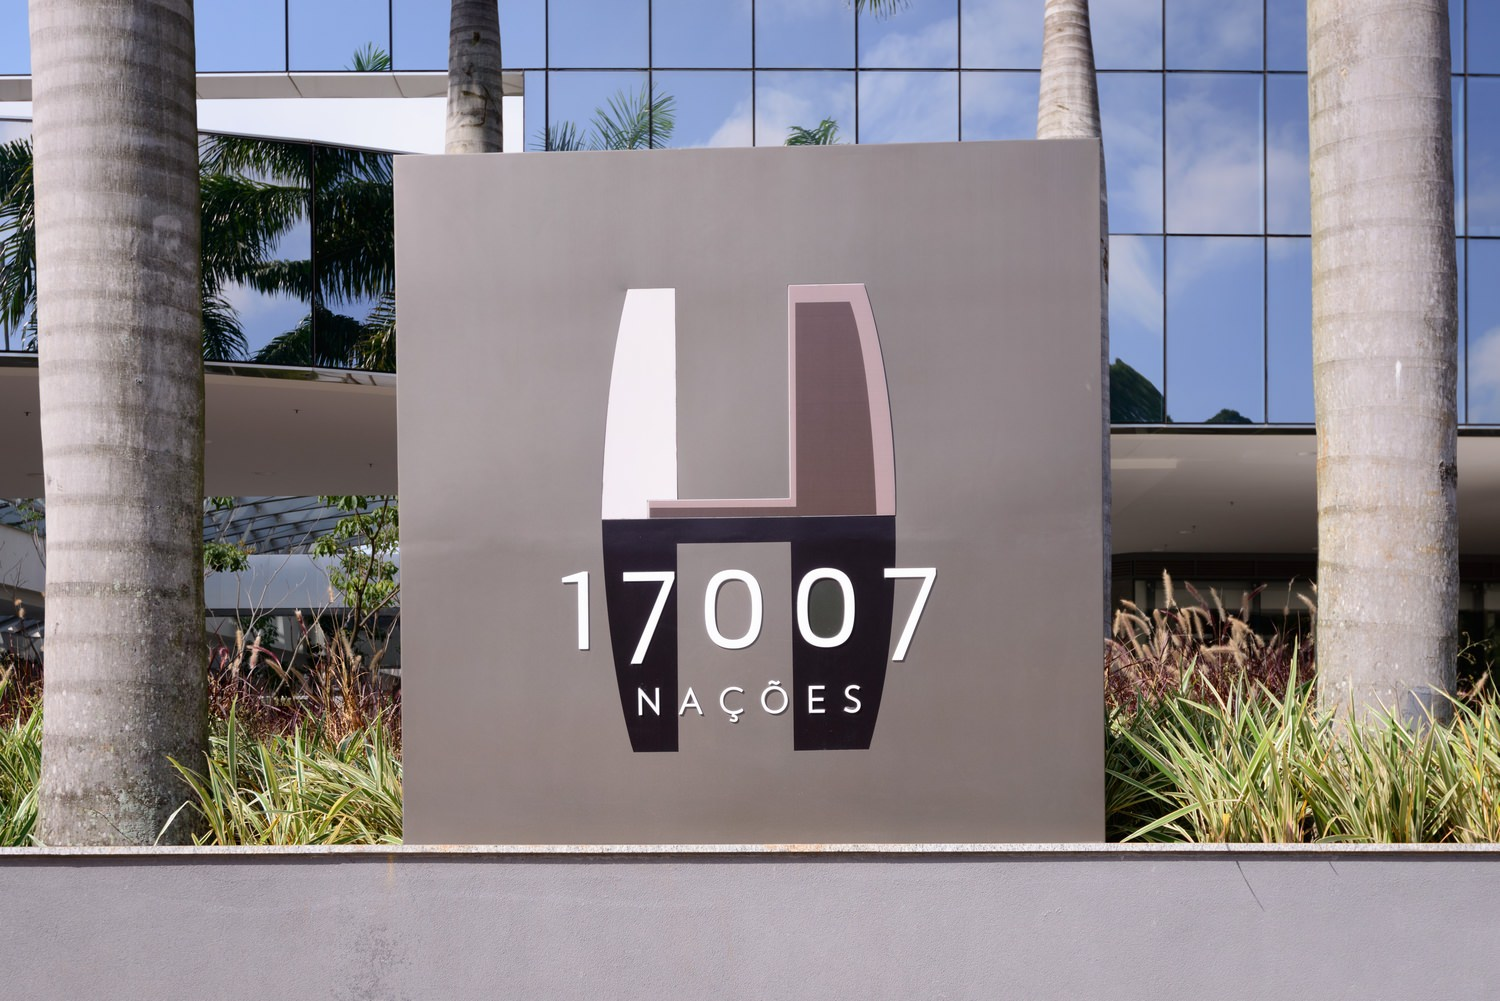 A sign that is in front of a building and the sign says 17007 Nacoes on it and plants next to it.